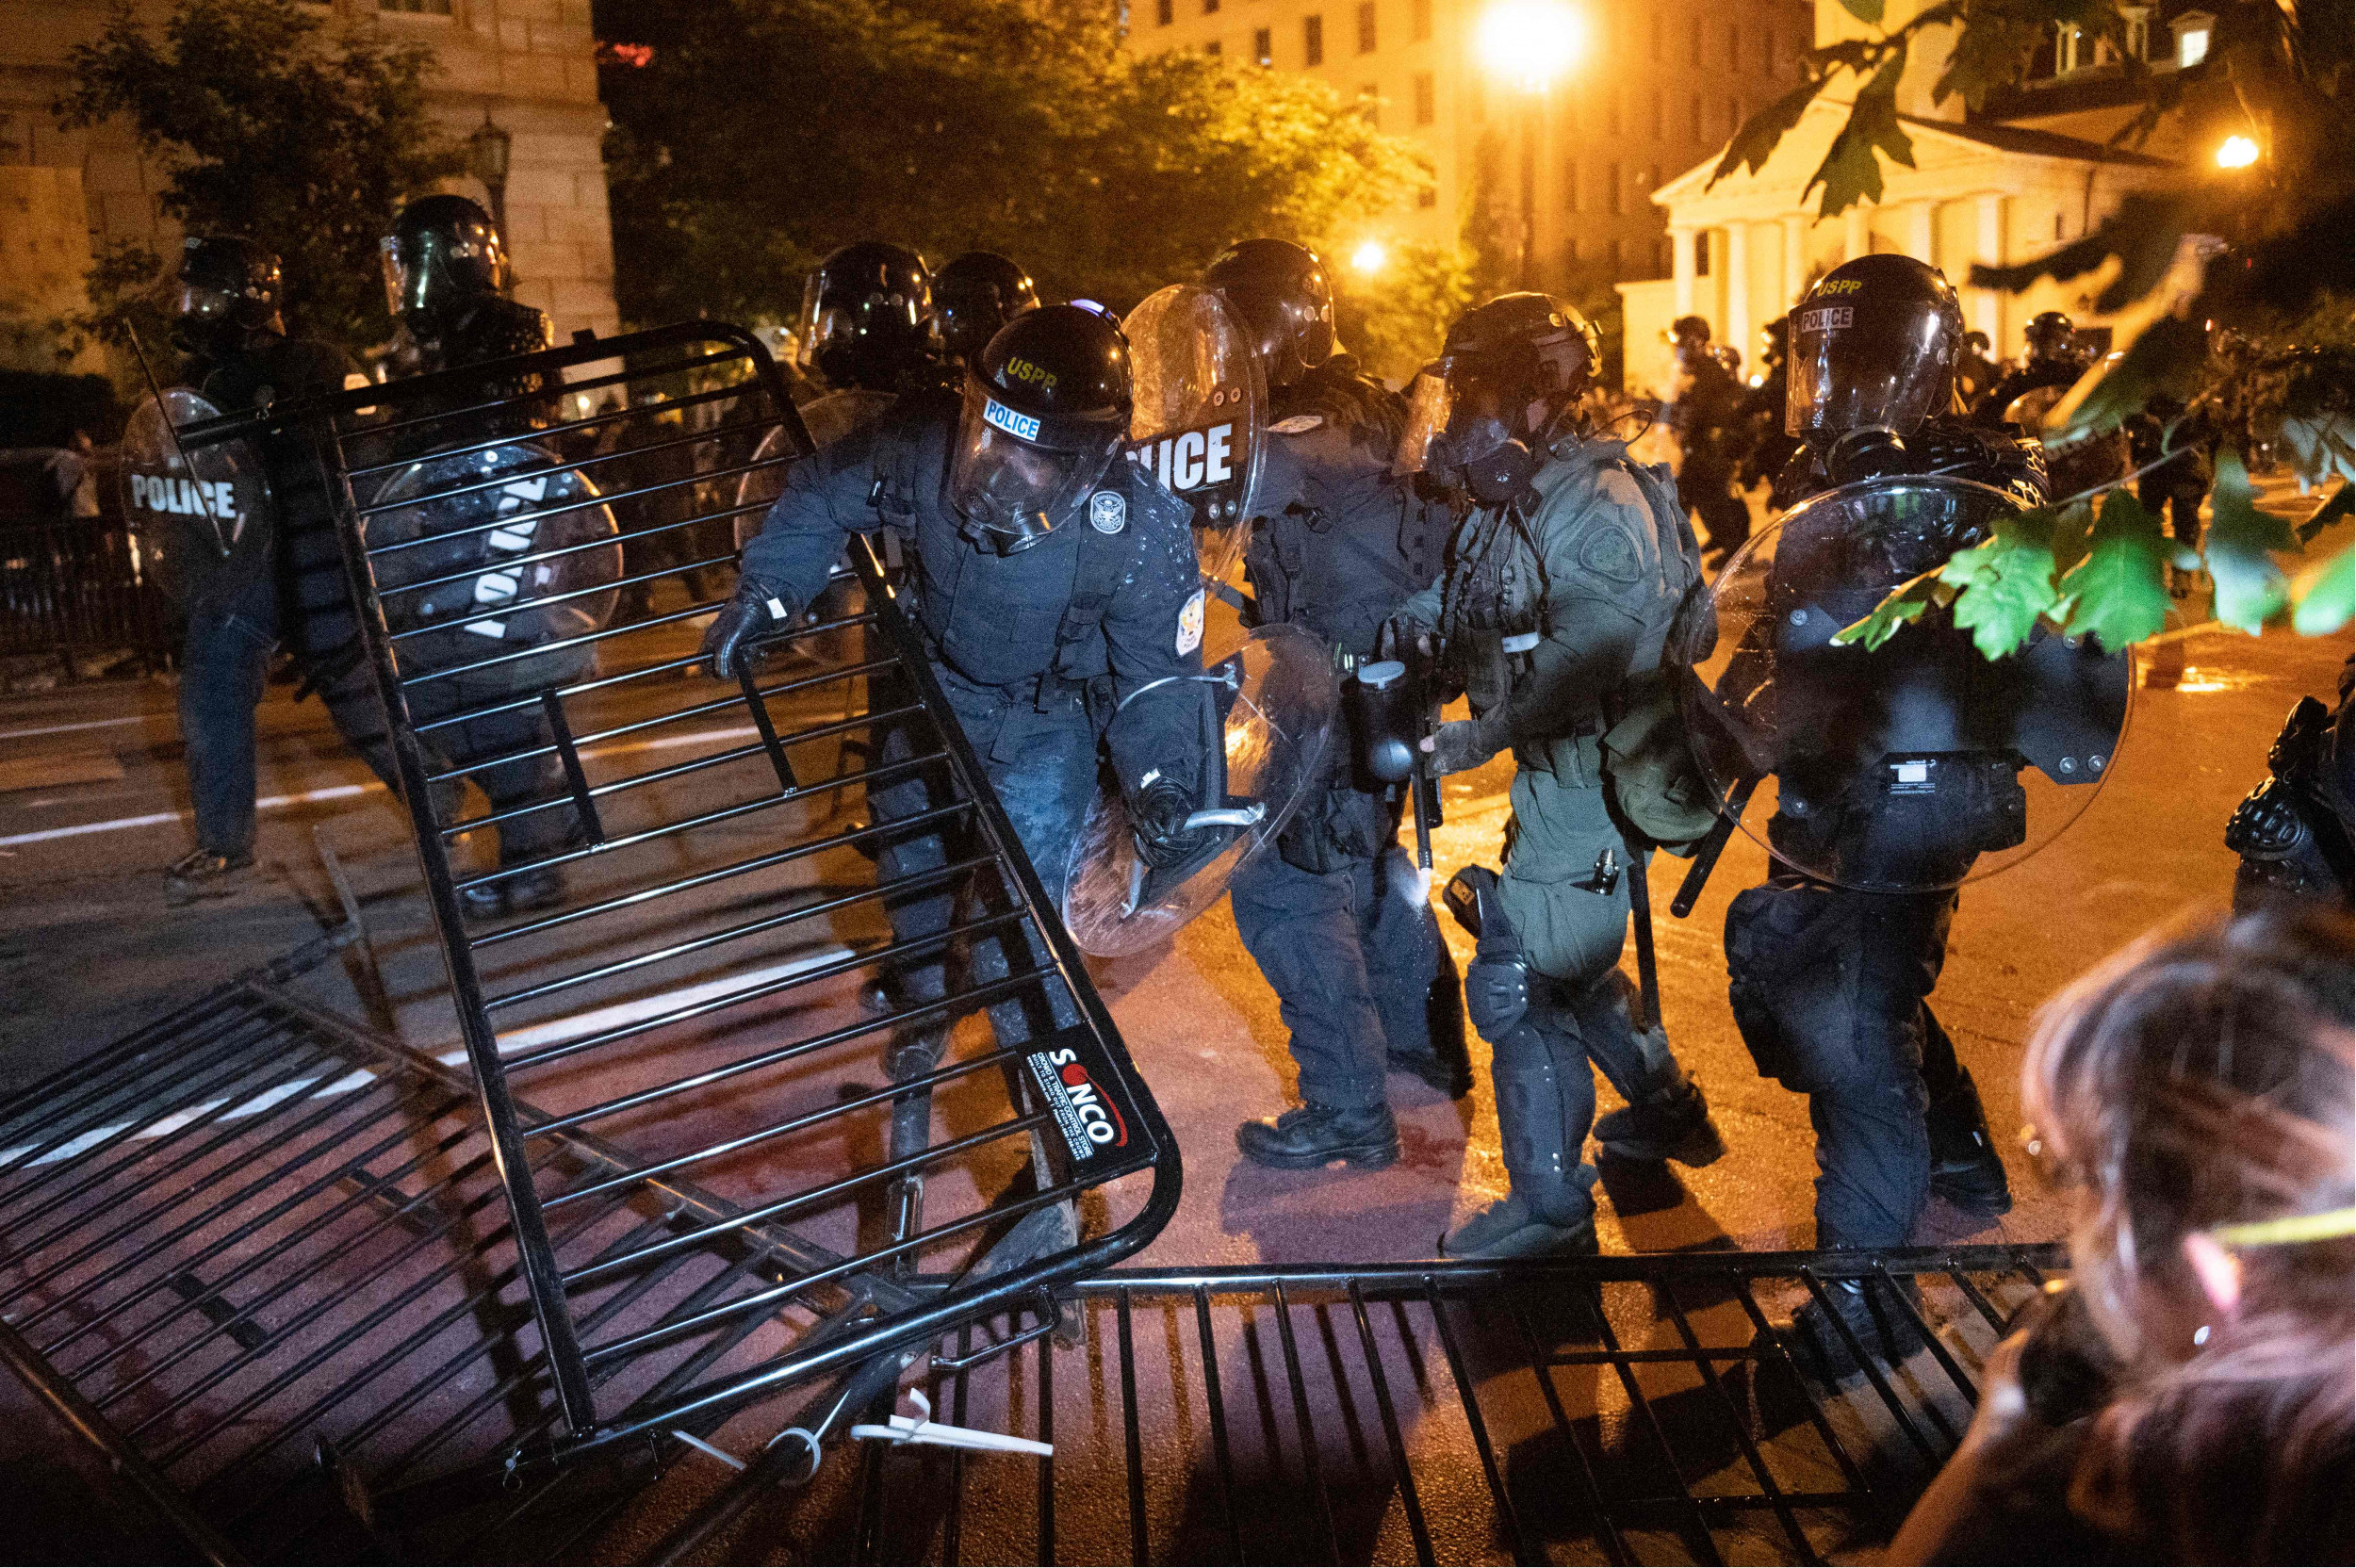 D.C. Delegate Says Police Teargassed Him While Protesting Near White House